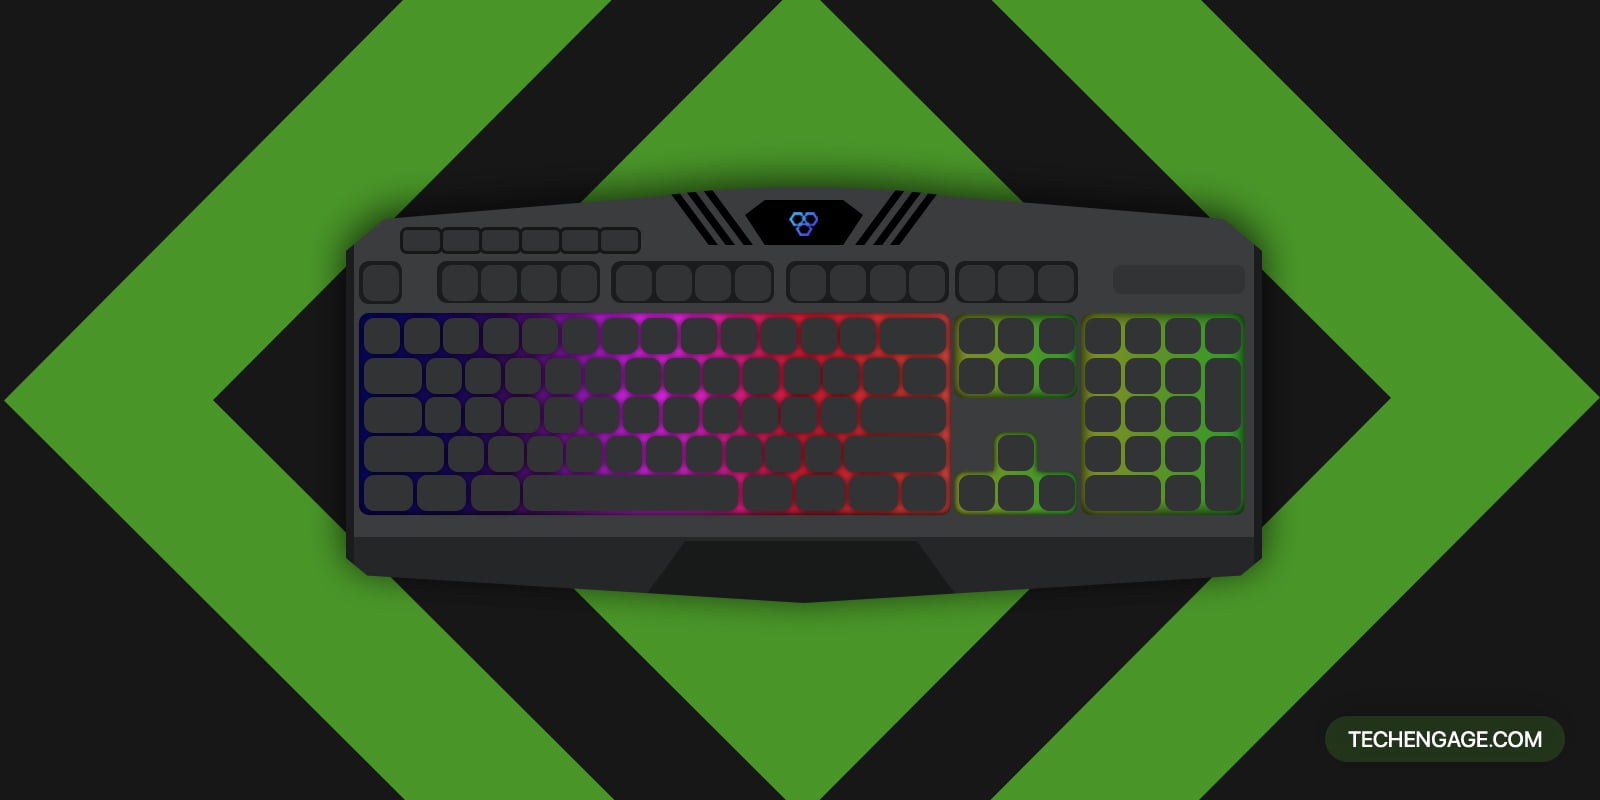 Best gaming keyboards on Amazon in 2021